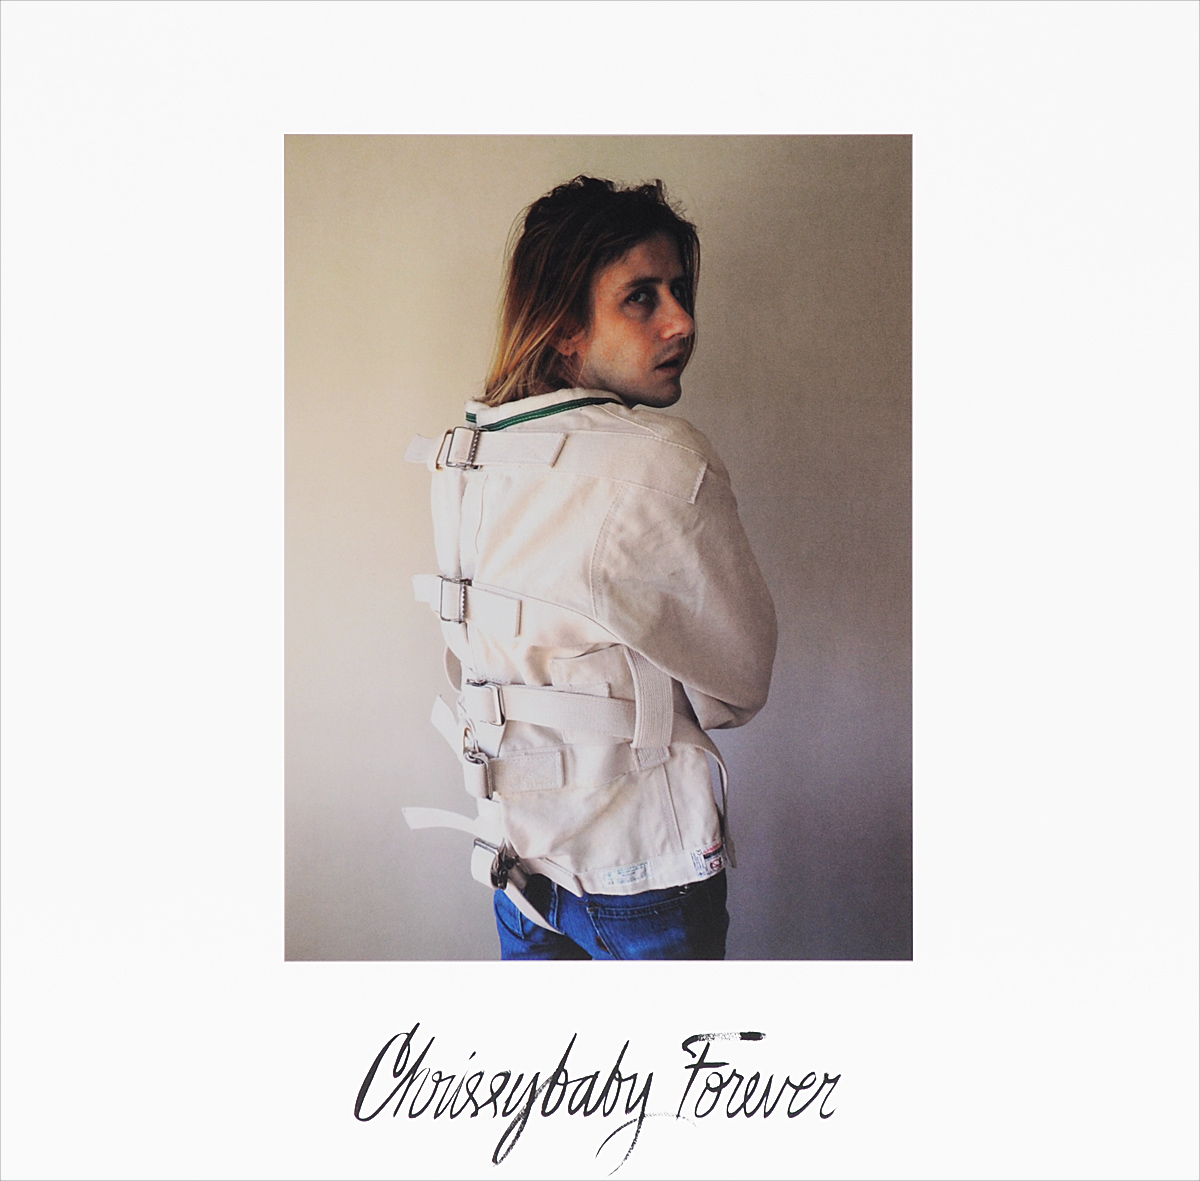 Christopher Owens Christopher Owens. Chrissybaby Forever (LP) mears patricia breward christopher boyer g bruce chensvold christian monden masafumi mcneil pe ivy style